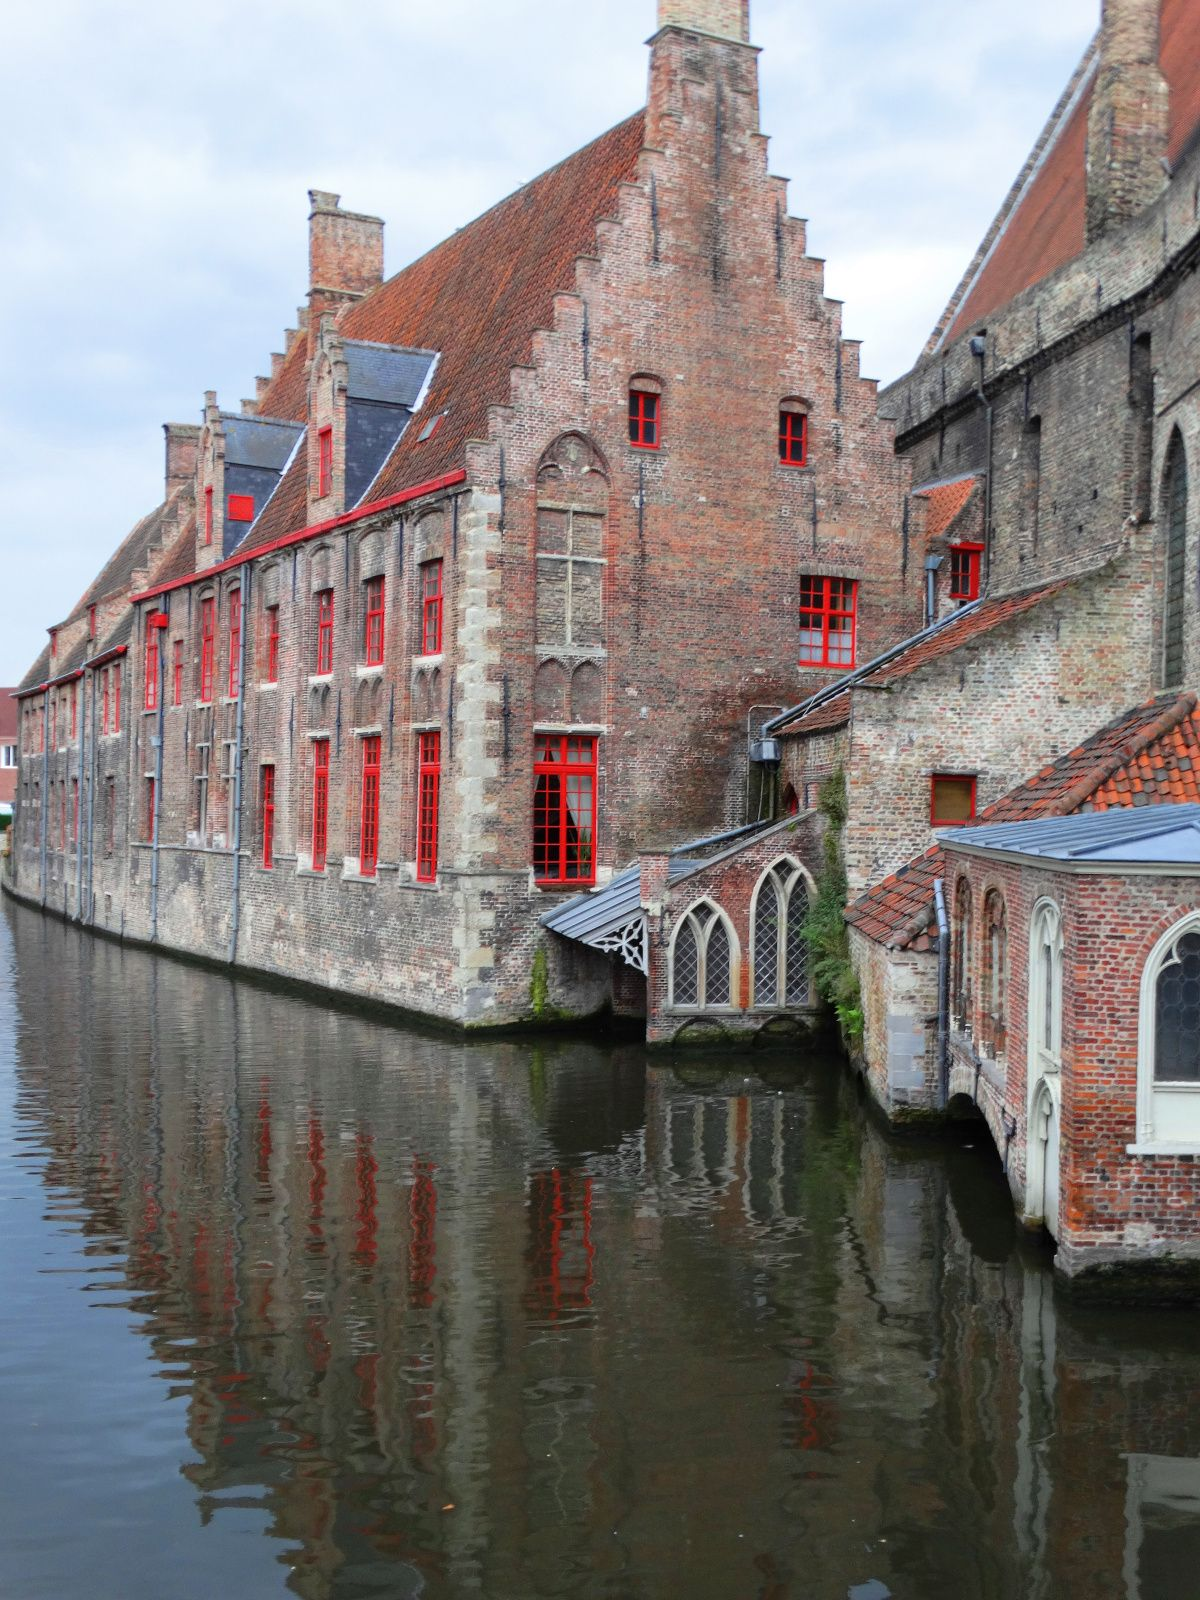 Brugge - Although the tourist center is crowded with day visitors, the city empties out in the early evening.